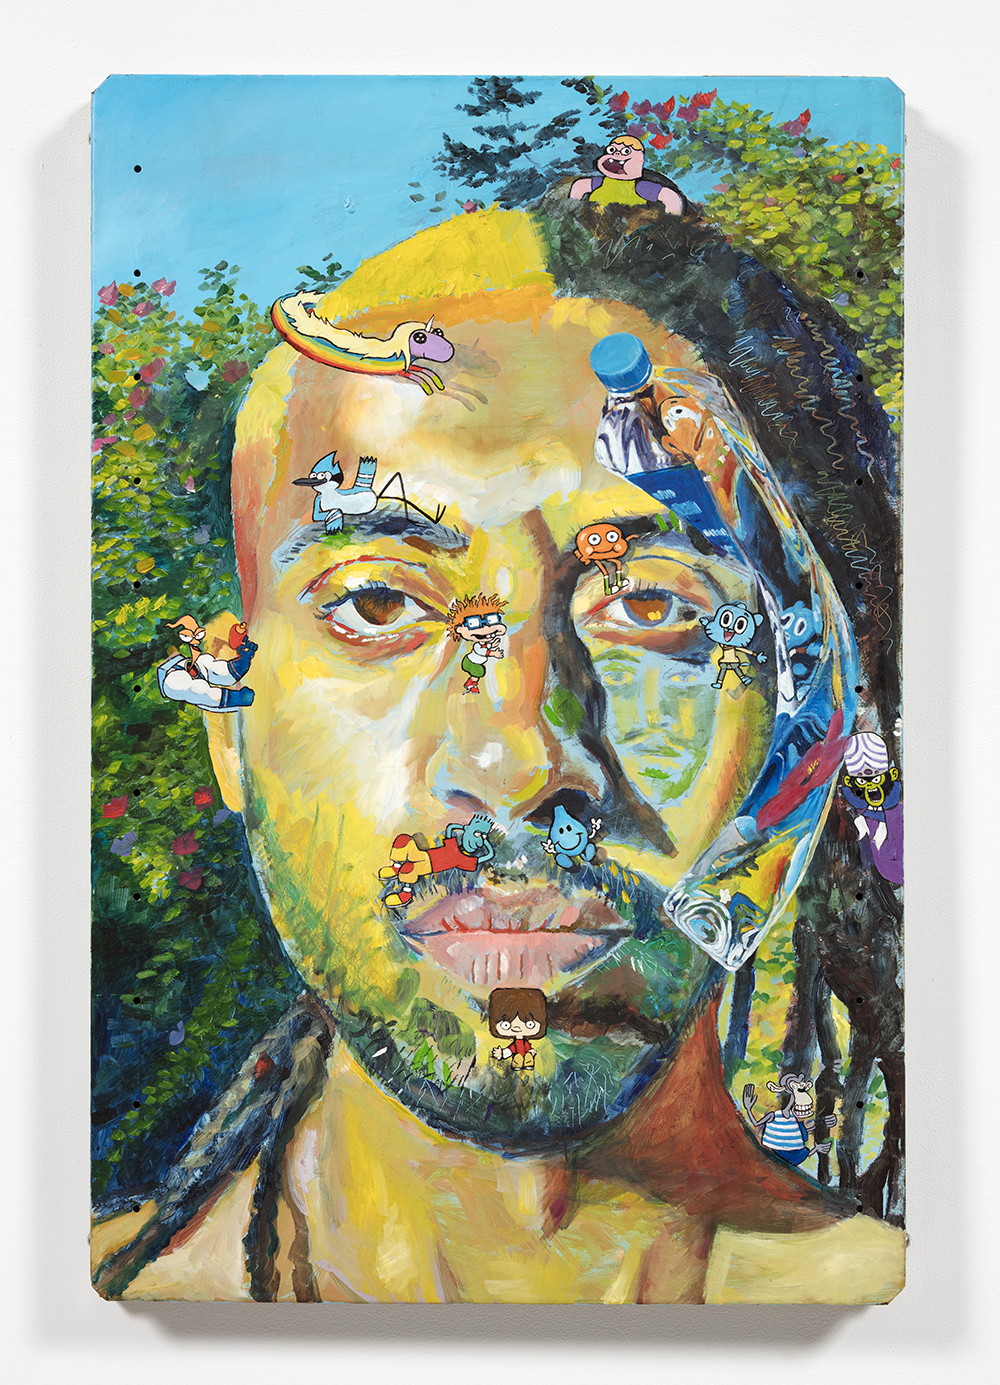 Yung Jake. <em>Untitled Self-Portrait 1 (princess rainicorn, mordecai, darwin, chuckie, gumball, earthworm jim, mojo jojo, wet willy, skeeter, mac + darwin)</em>, 2020. Oil on found metal; powder-coated steel support, 36 x 24 inches  (91.4 x 61 cm)